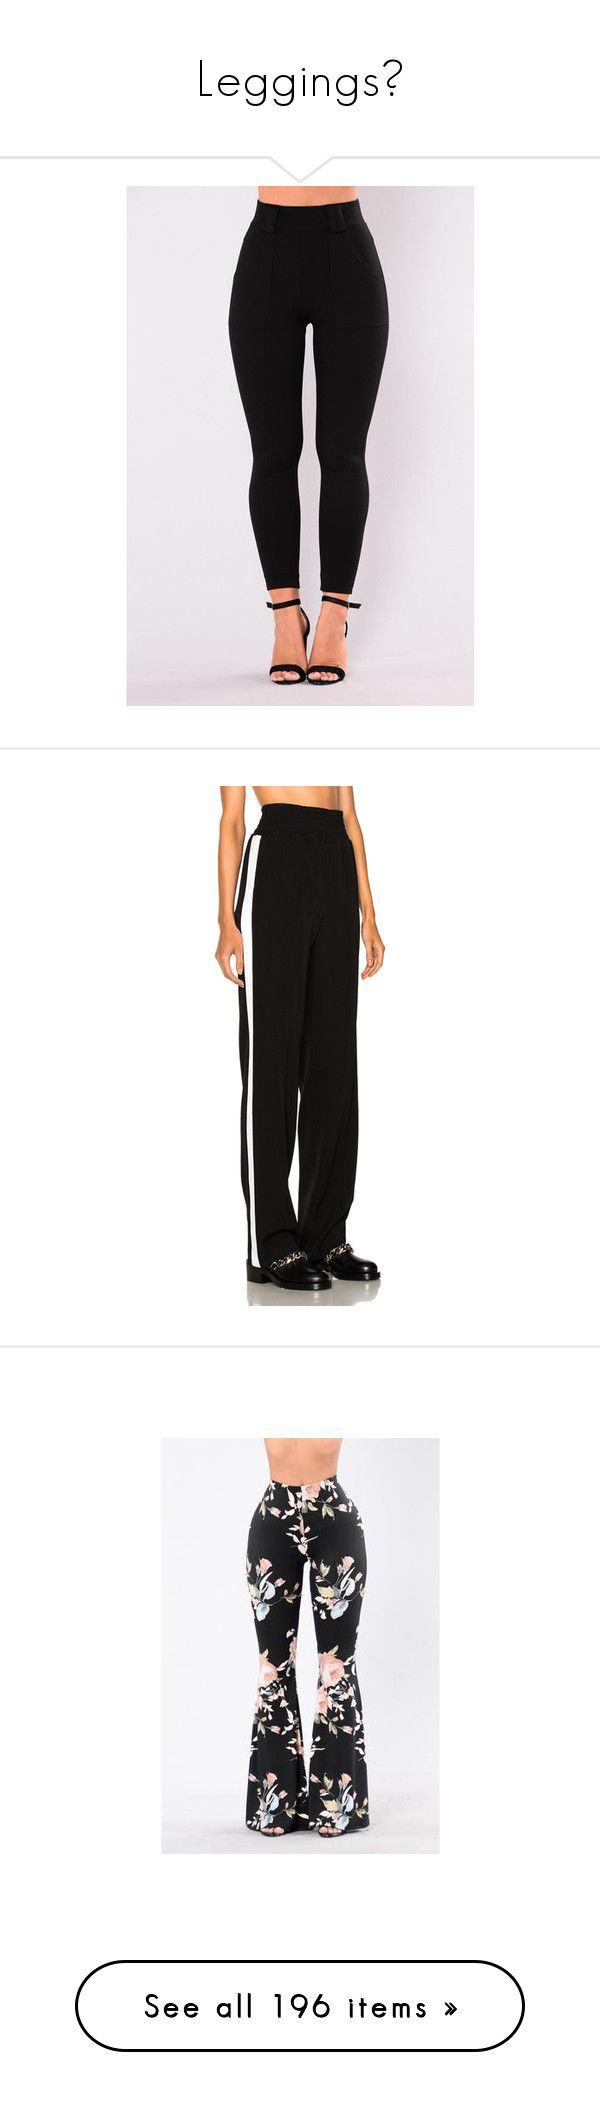 """""""Leggings👖"""" by gamergirl247 ❤ liked on Polyvore featuring pants, skinny jogger pants, jogger suit pants, fitted cargo pants, skinny suit pants, skinny cargo pants, elastic waist pants, elastic waistband pants, satin pants and stretch waist pants"""